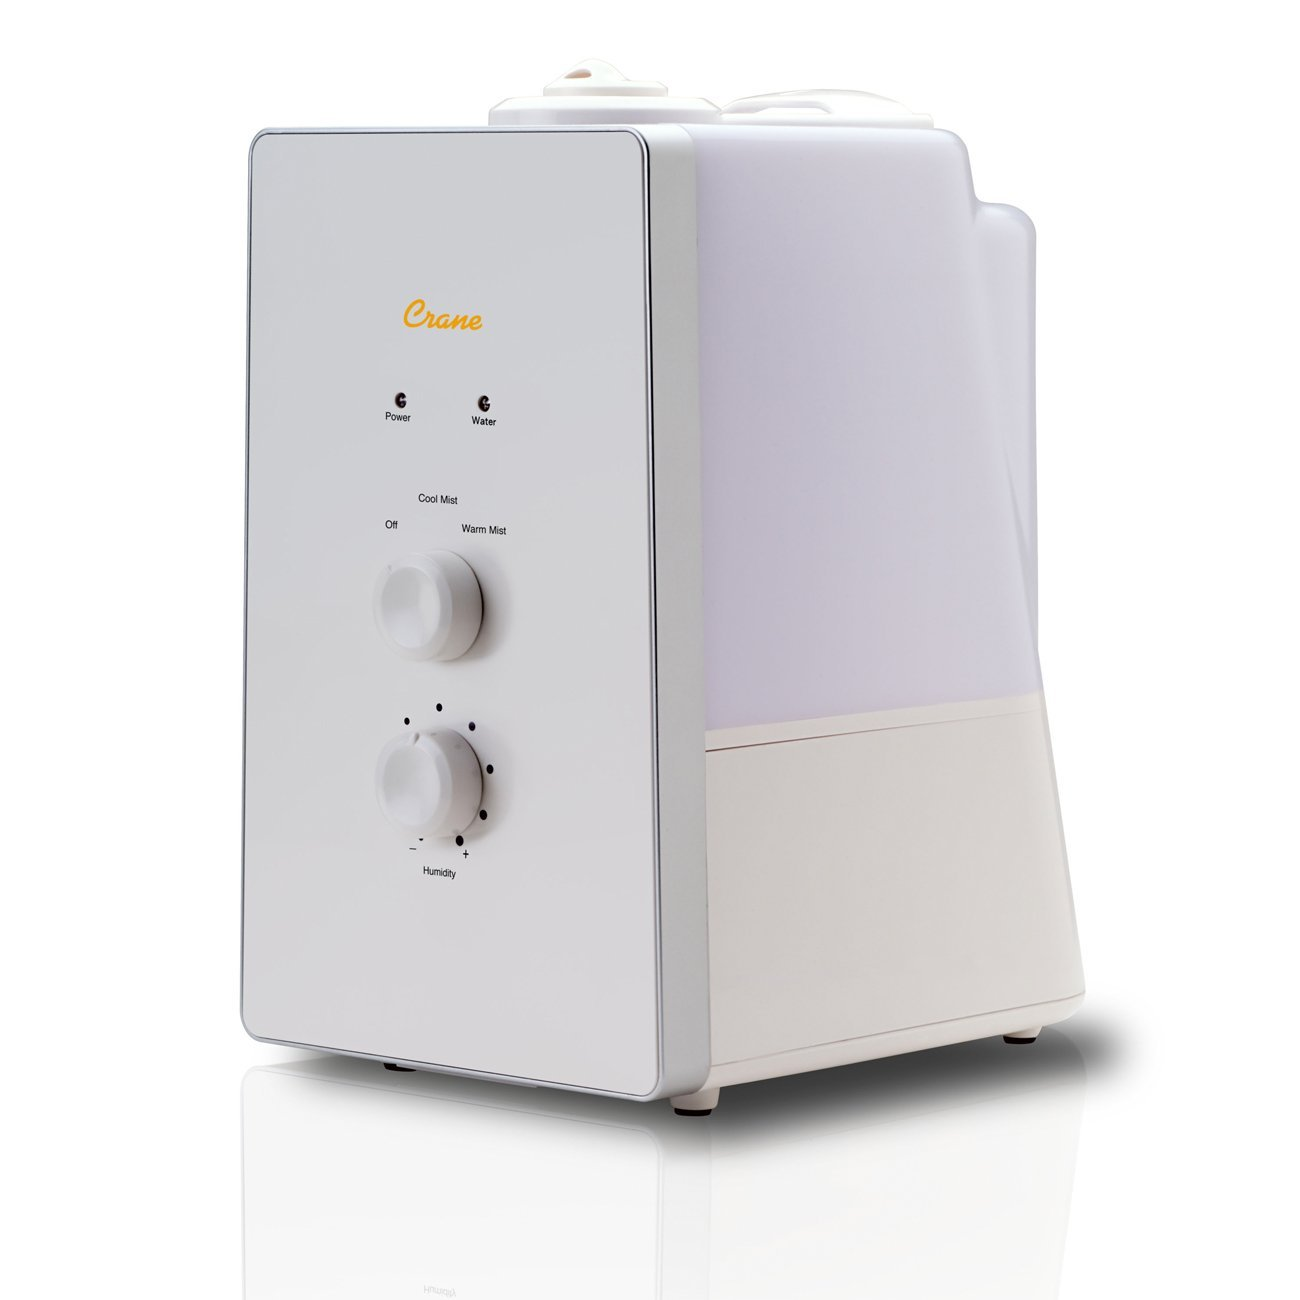 Crane Ee 8065 Crane Germ Defense Humidifier Manual White #AF7D1C